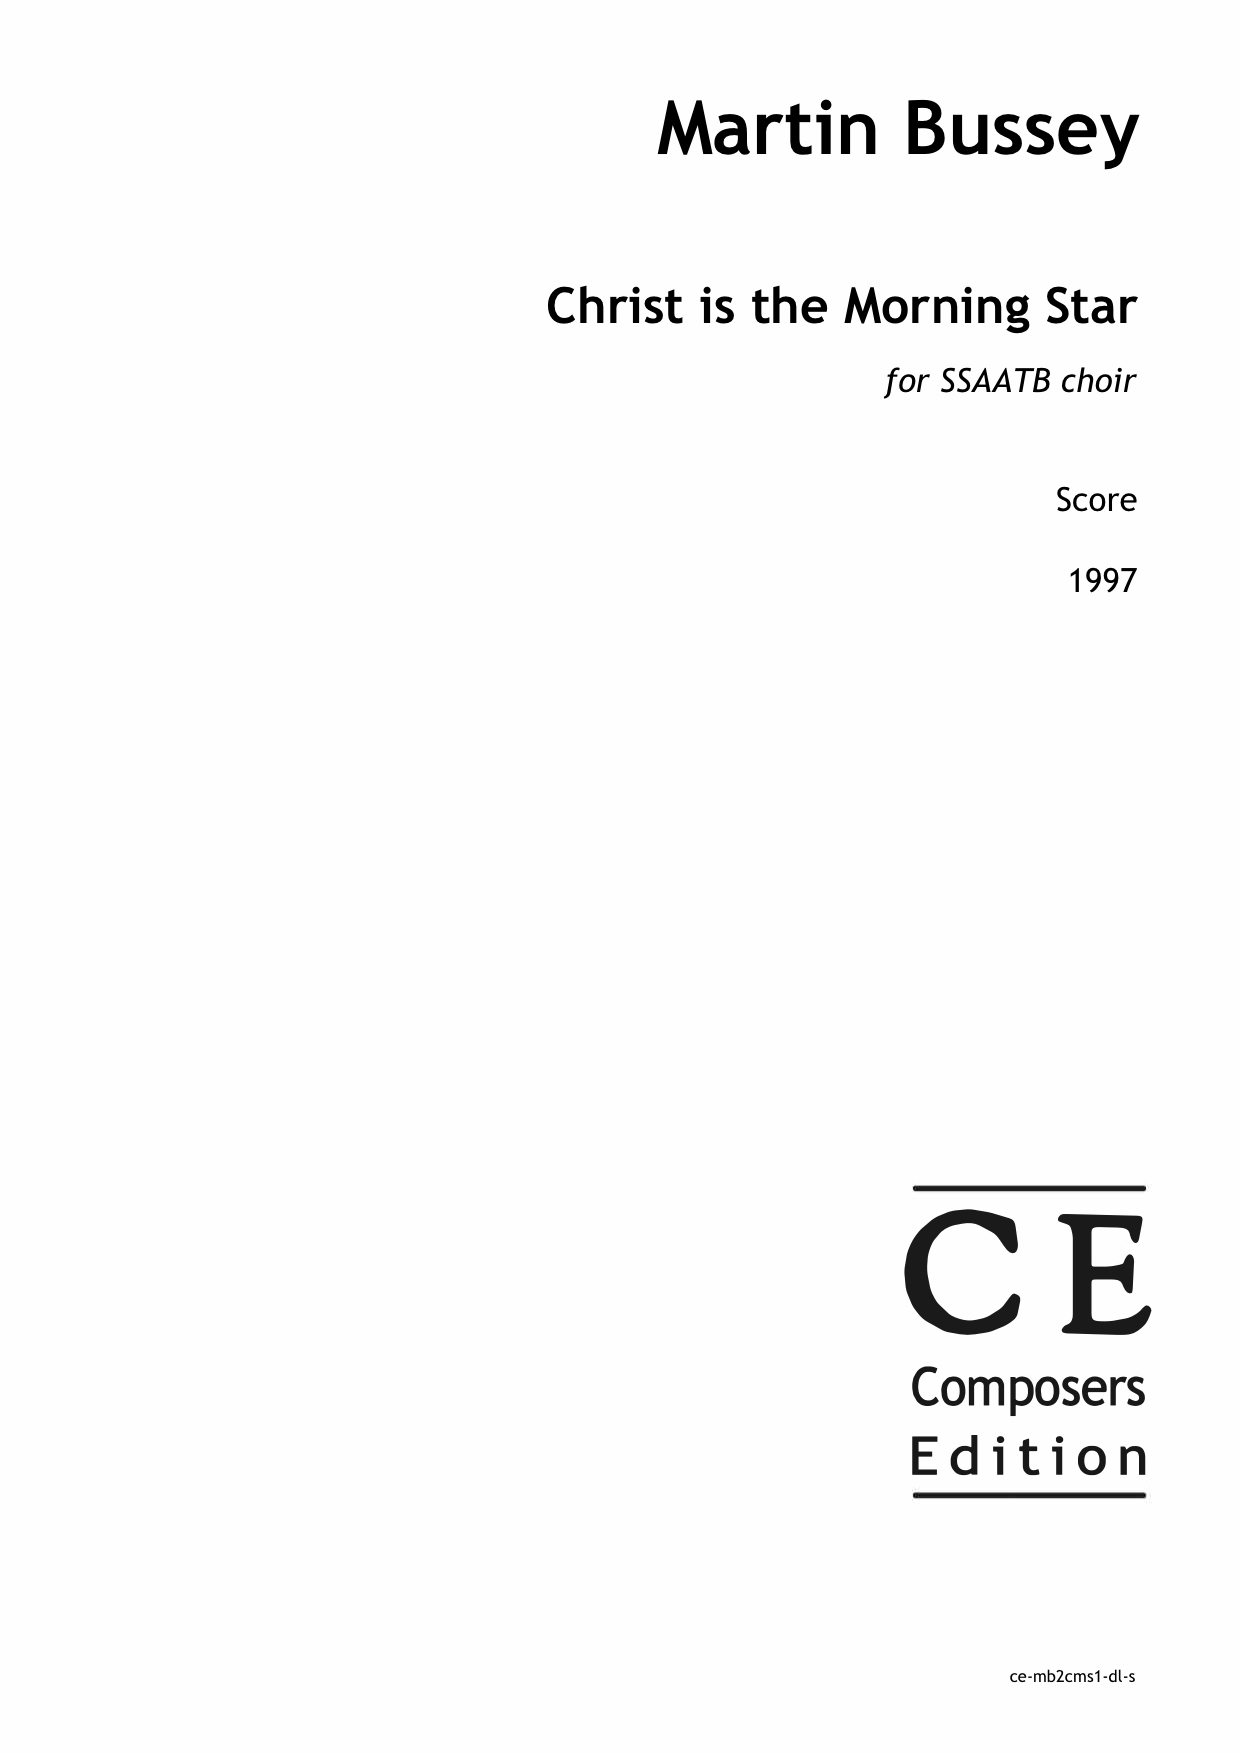 Martin Bussey: Christ is the Morning Star for SSAATB choir